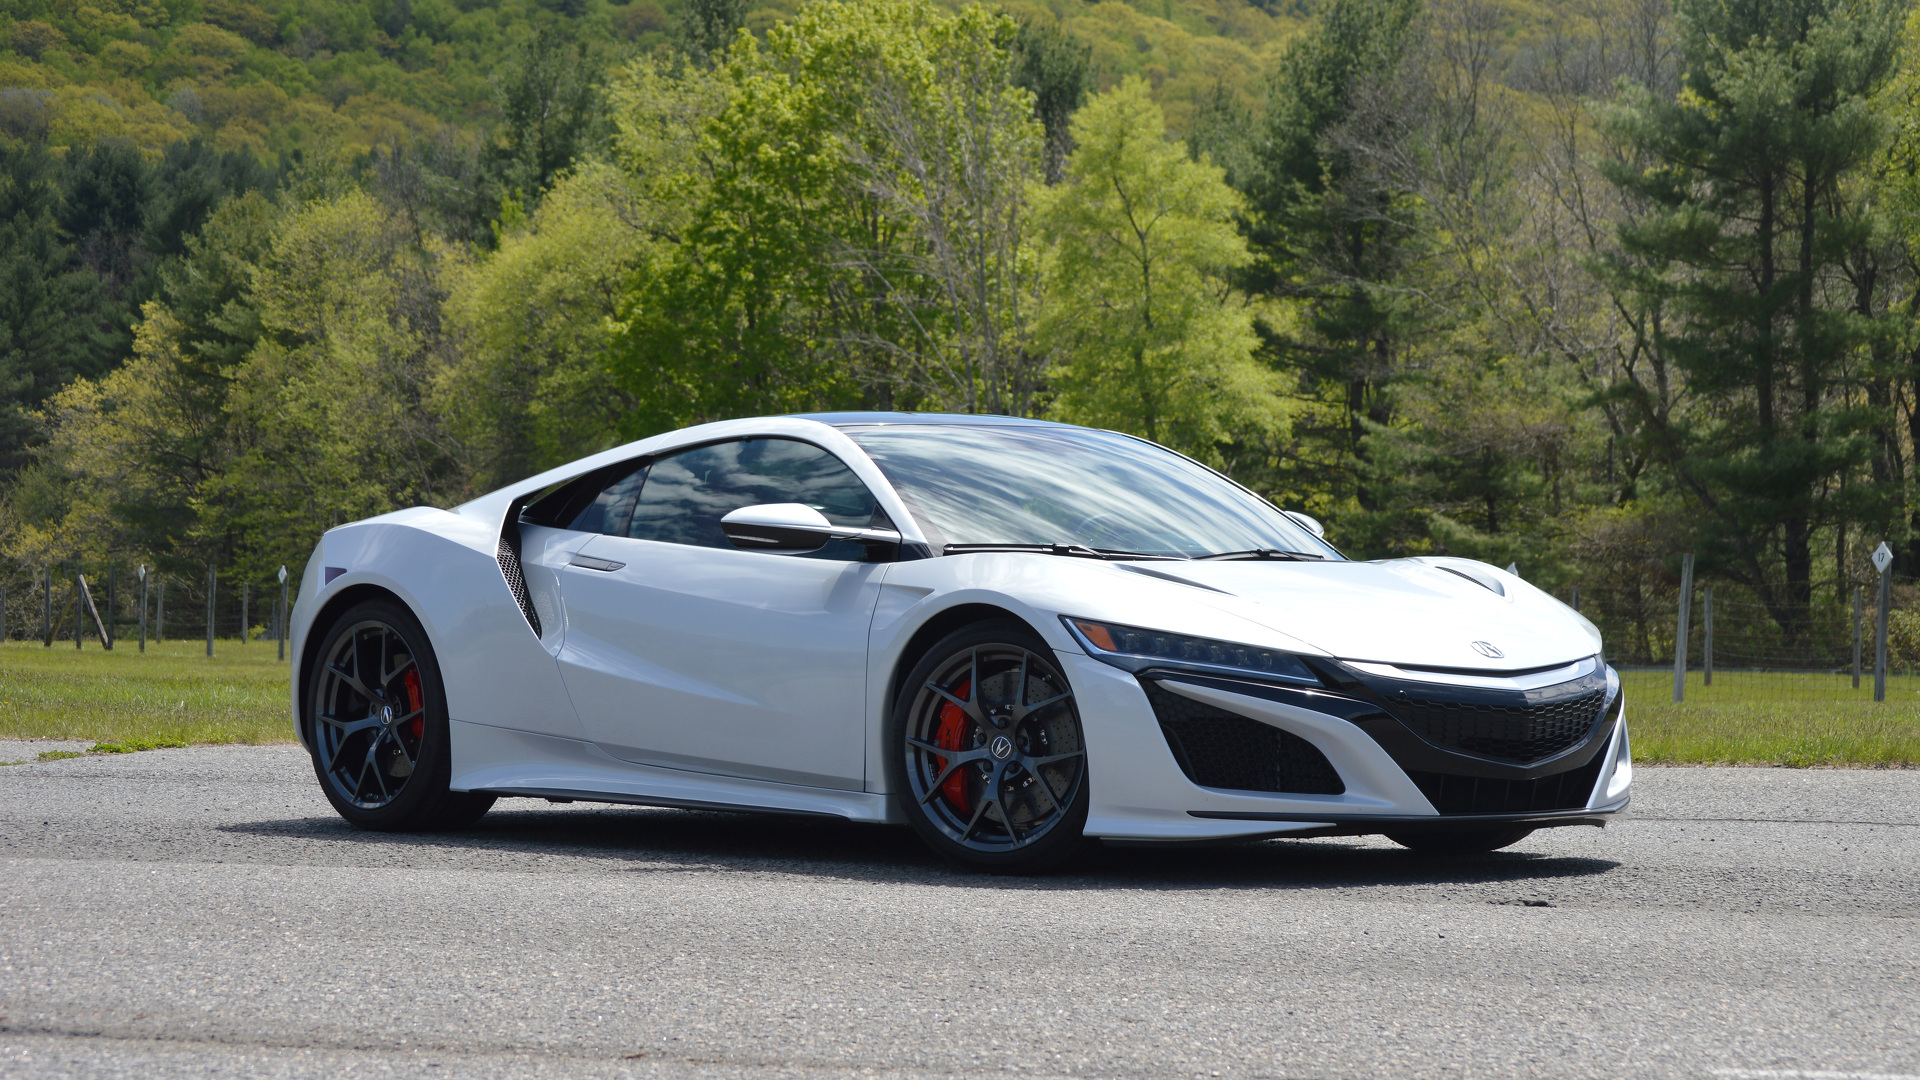 ma sh awd sport htm norwell l nsx for acura sale in hybrid c used